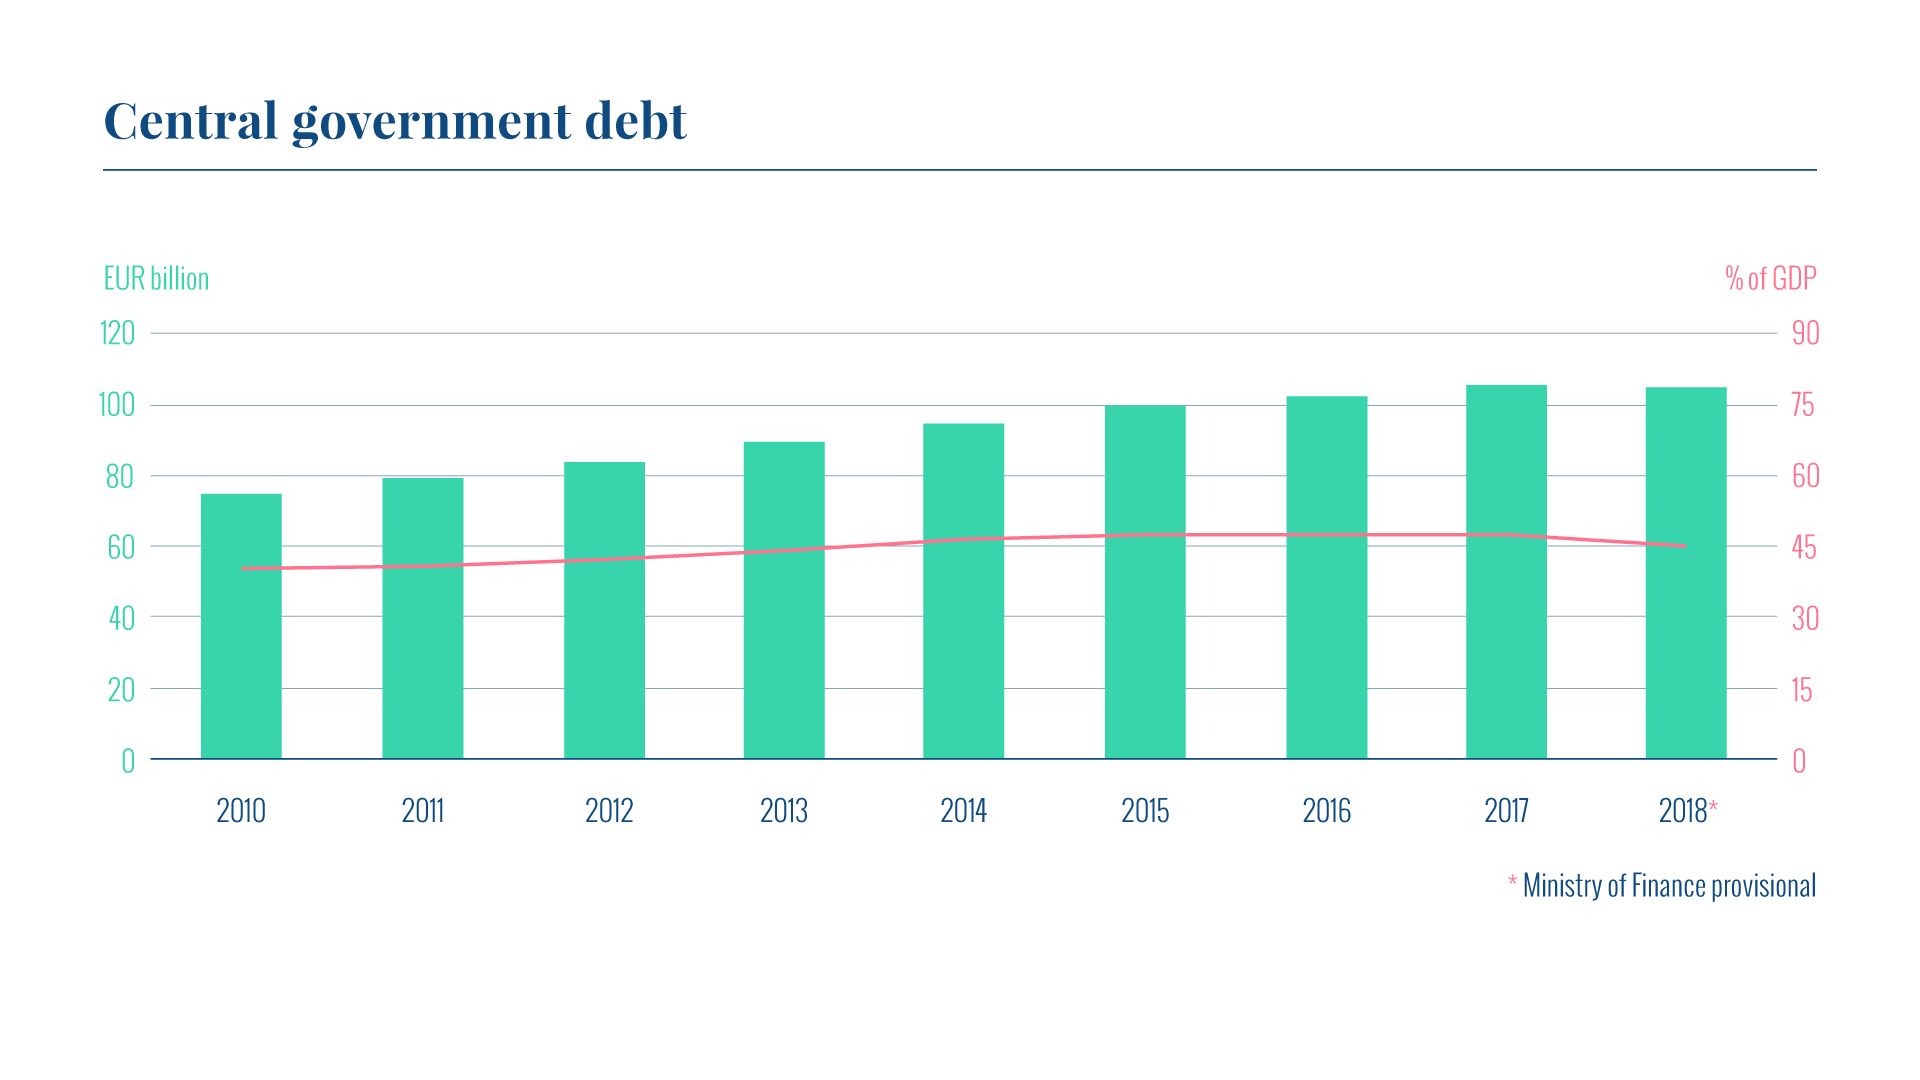 The graph shows the volume of Finland's central government debt and debt in relation to GDP in 2010-18. The central government debt was EUR 105.0 billion at the end of 2018. The debt-to-GDP ratio was 45%.